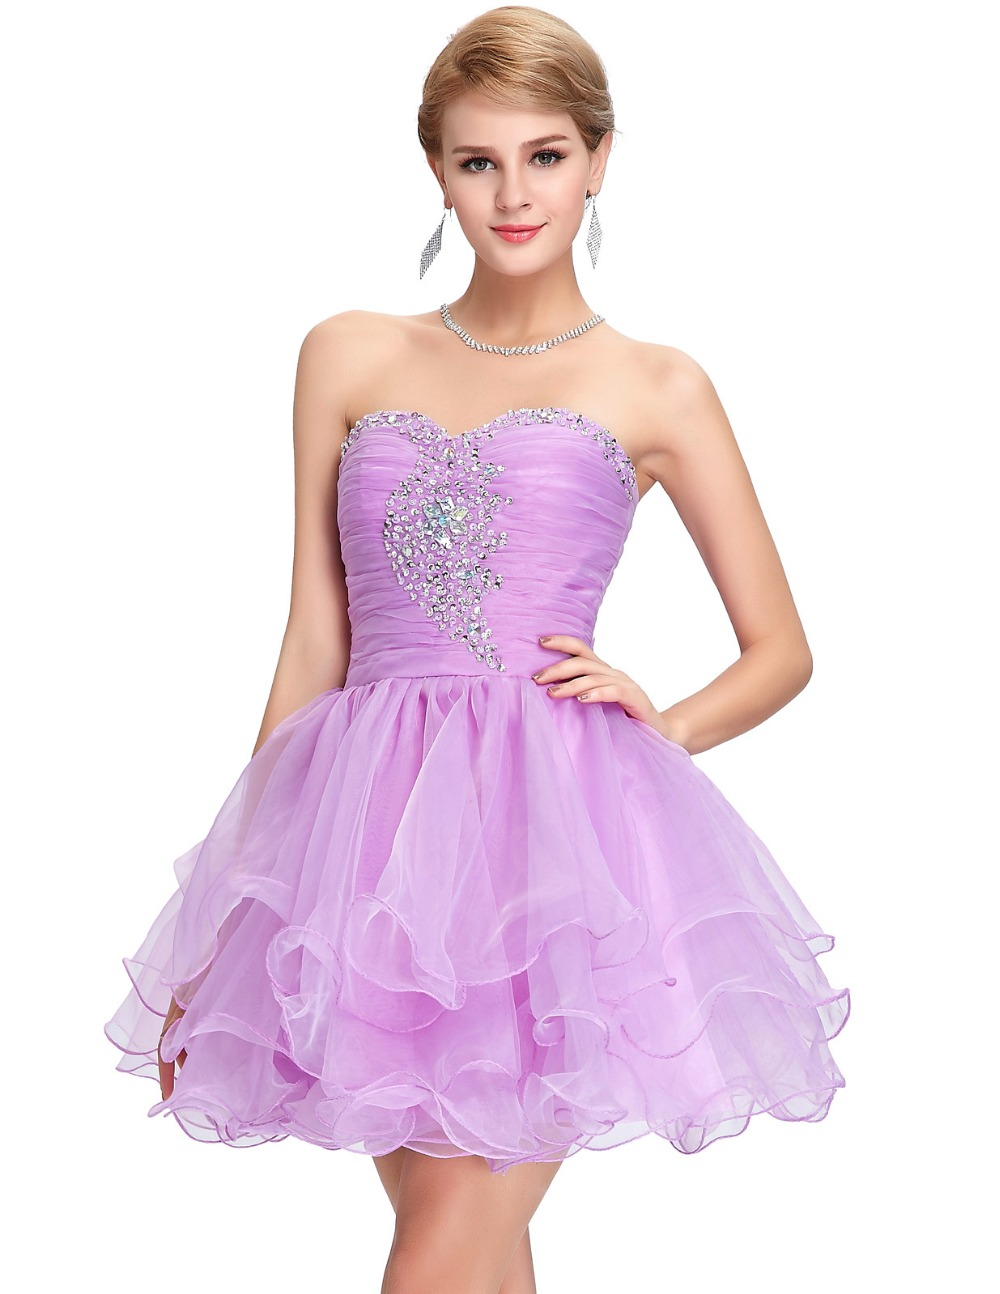 Black cocktail dress ball gown 2017 summer purple pink green girls black cocktail dress ball gown 2017 summer purple pink green girls homecoming short gowns cocktail party dresses 6077 in cocktail dresses from weddings ombrellifo Choice Image